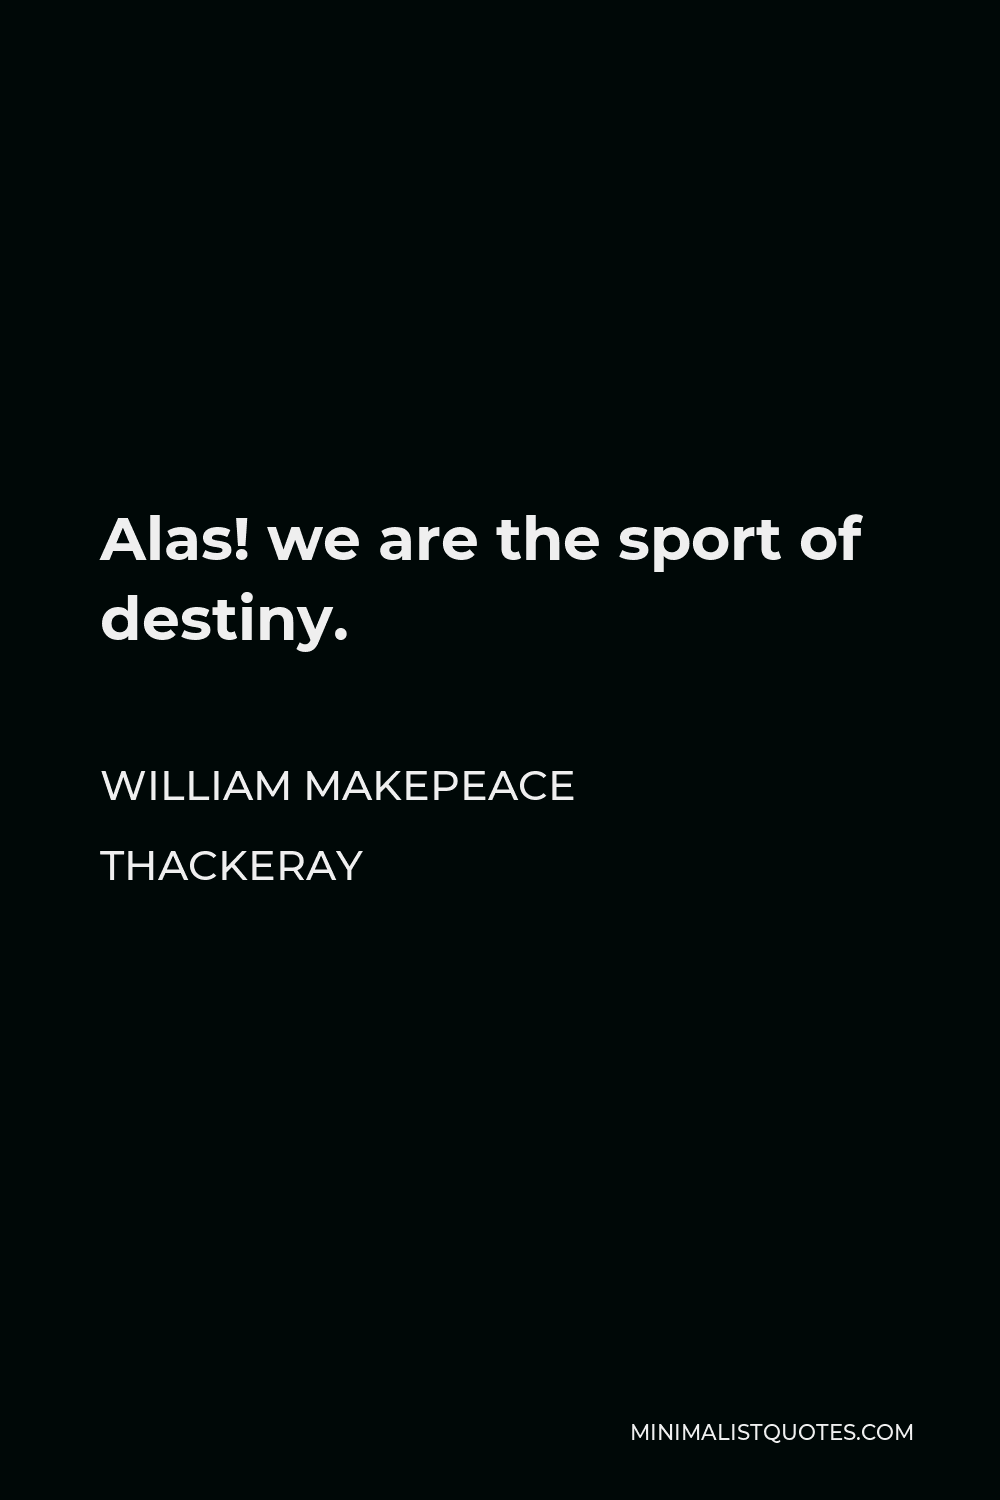 William Makepeace Thackeray Quote - Alas! we are the sport of destiny.